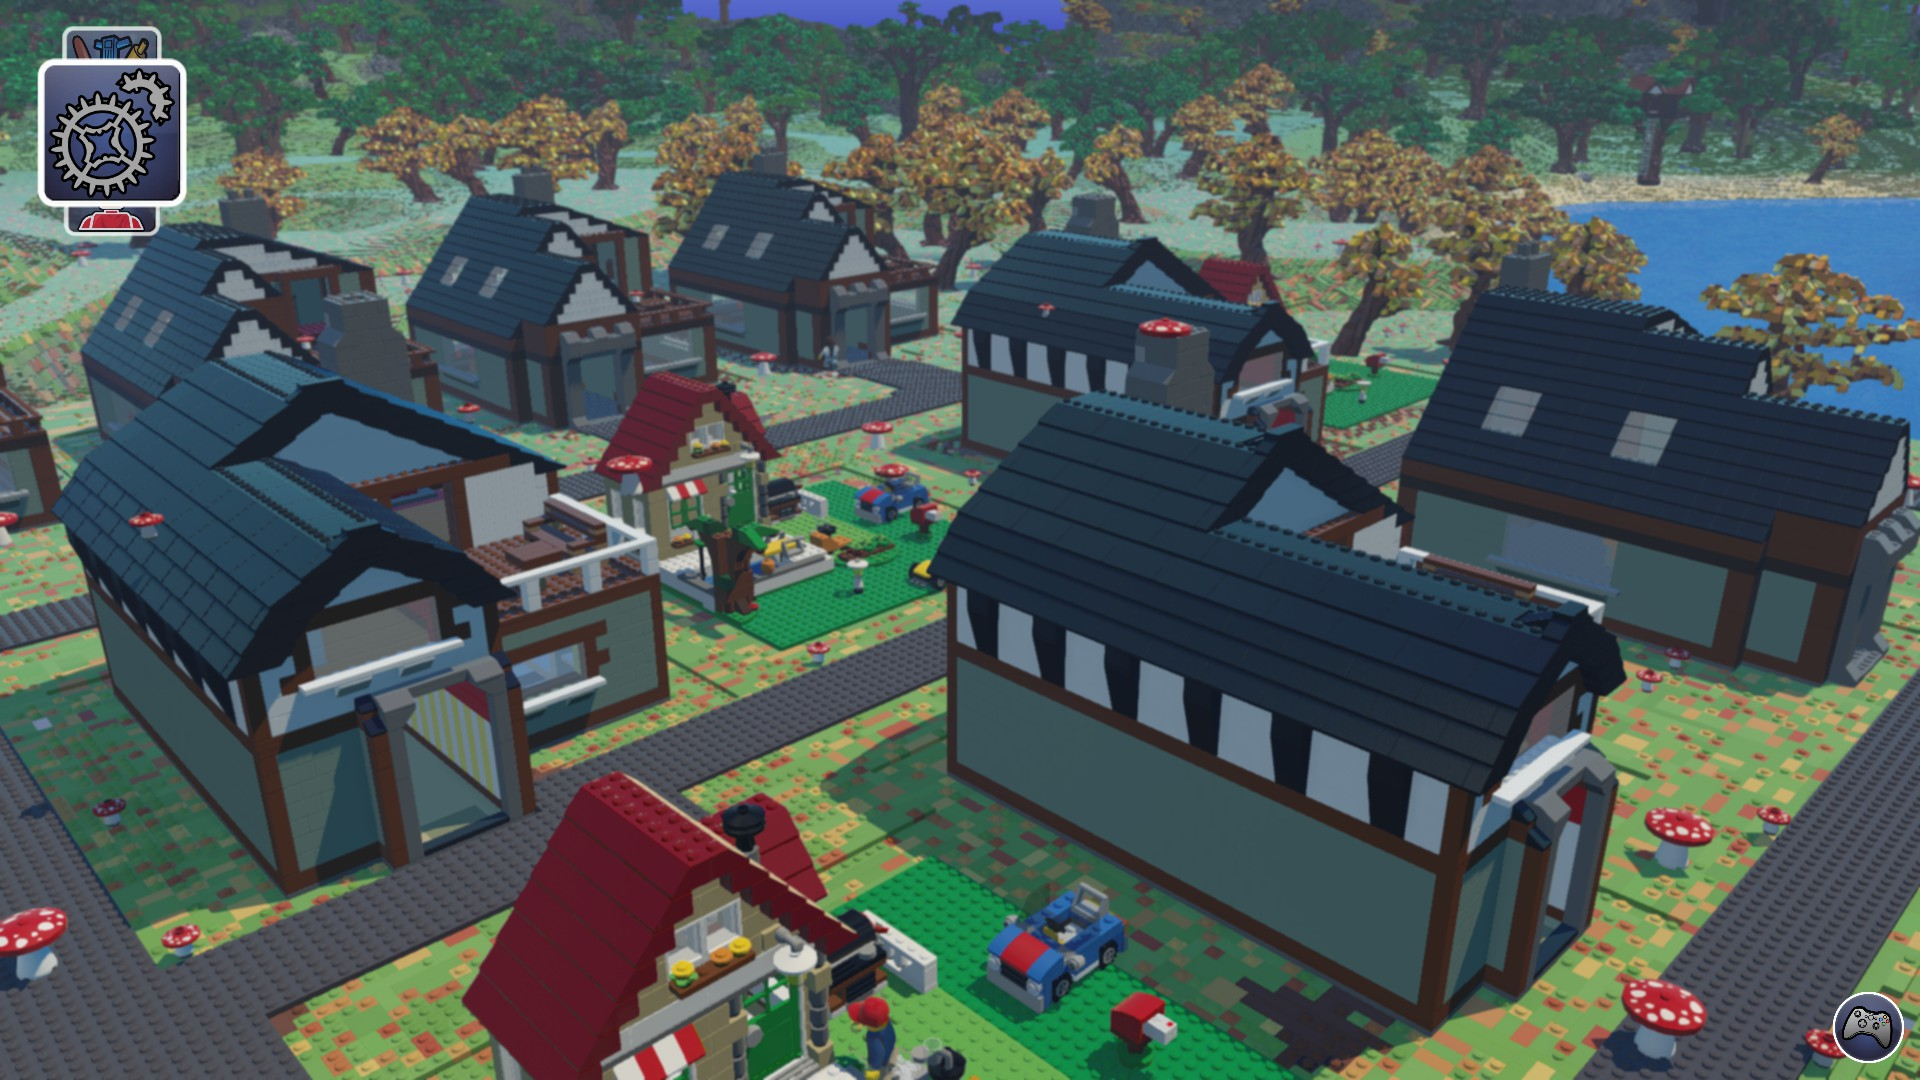 Warner Bros Interactive Entertainment's LEGO Worlds takes on Microsoft's Minecraft